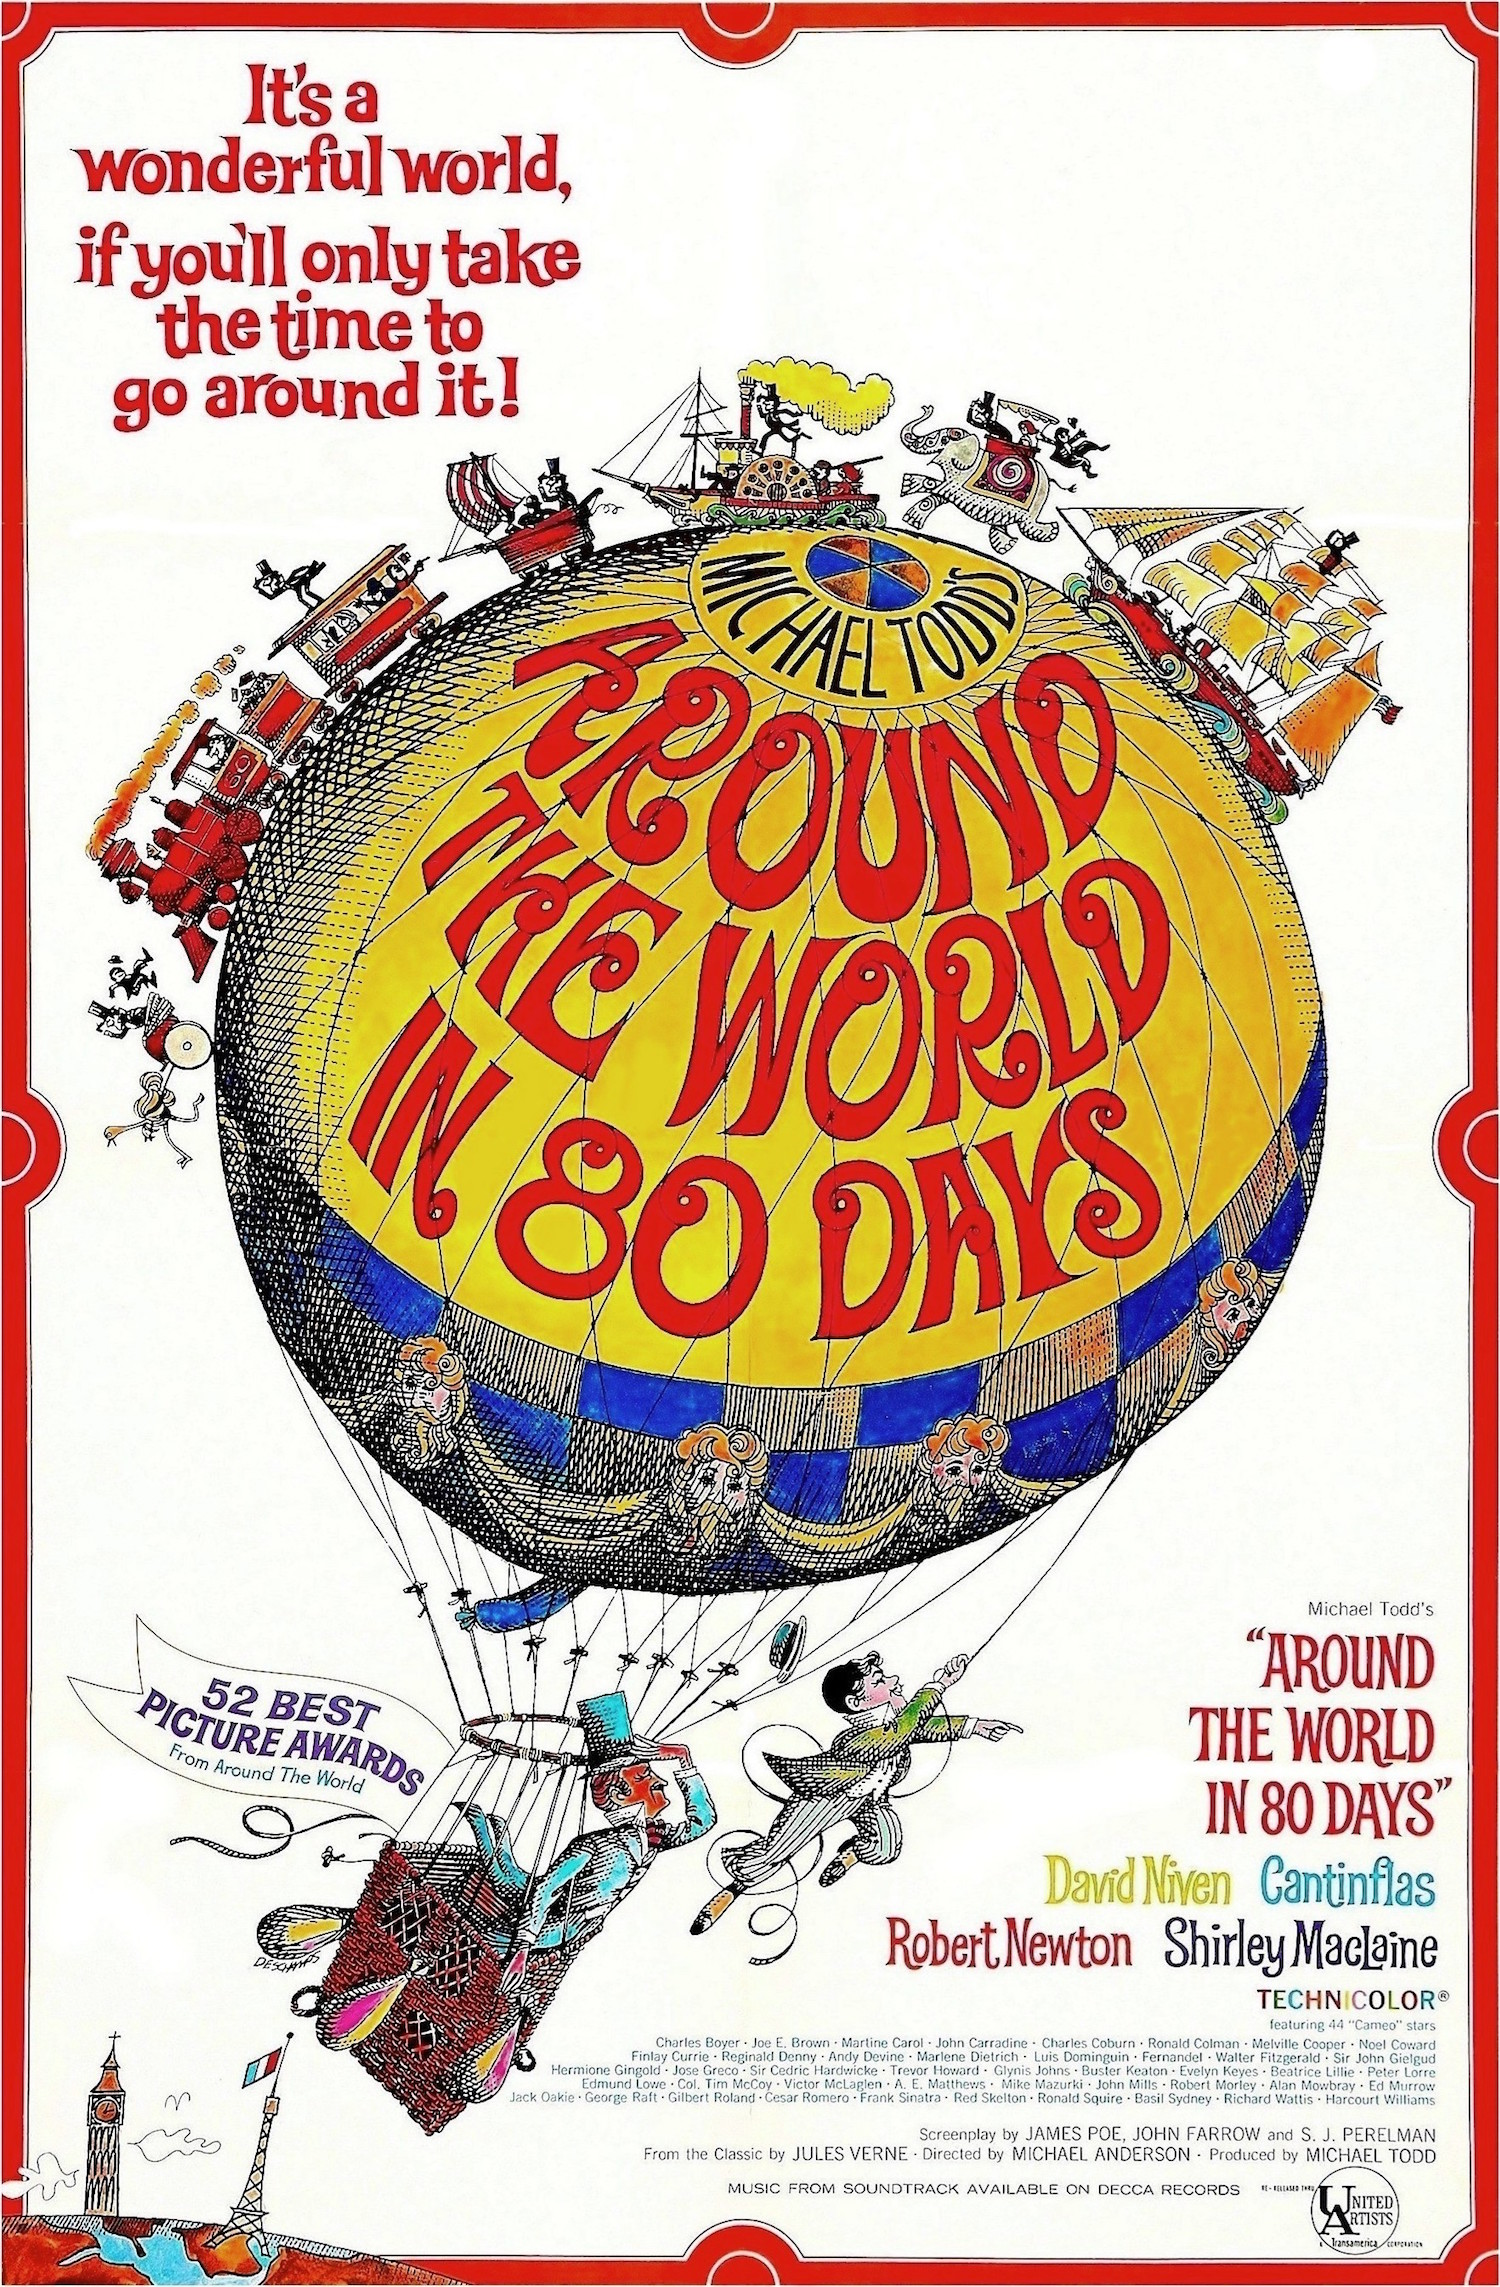 around-the-world-in-80-days-poster.jpg